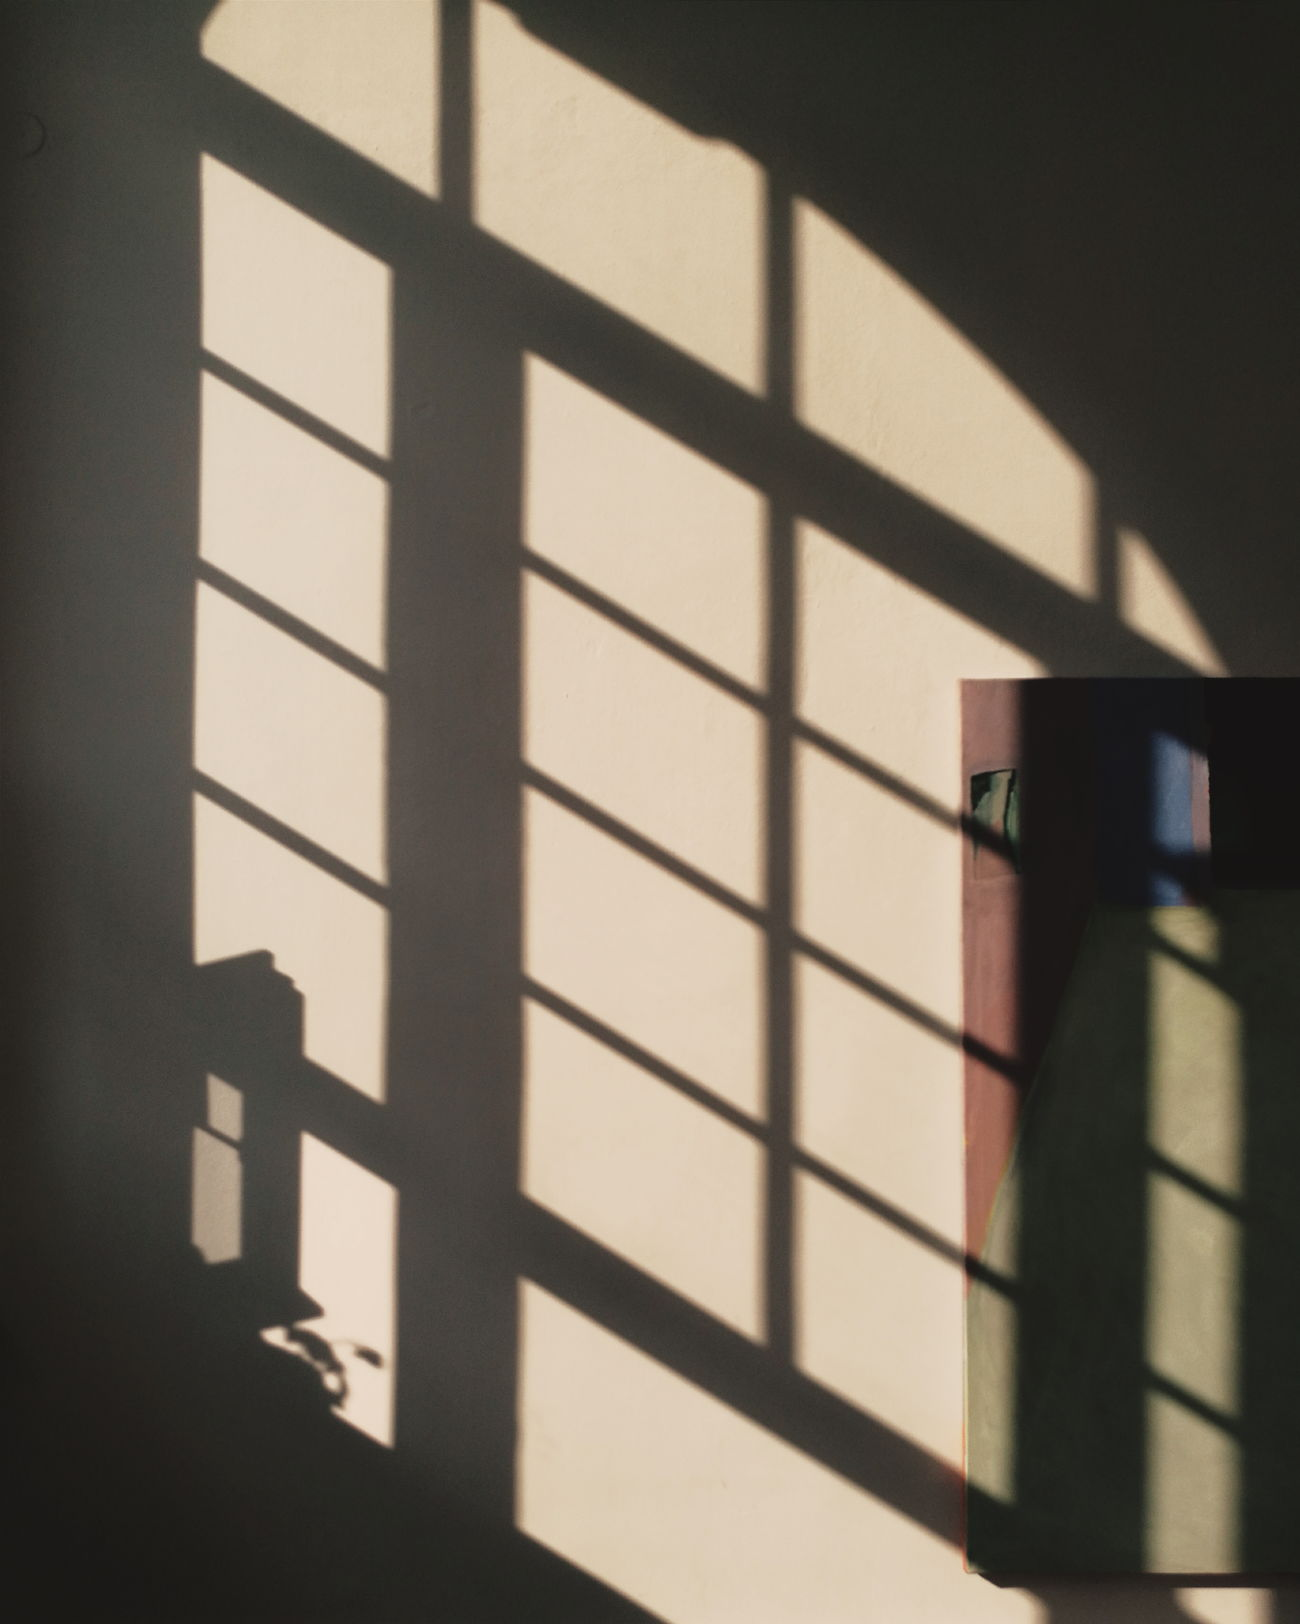 Shadow Sunlight Indoors  Architecture Mobilephotography Eye4photography  Urban Exploration Vscocam Still Life Taking Photos HuaweiP9 Window VSCO The City Light Interior Views Interior